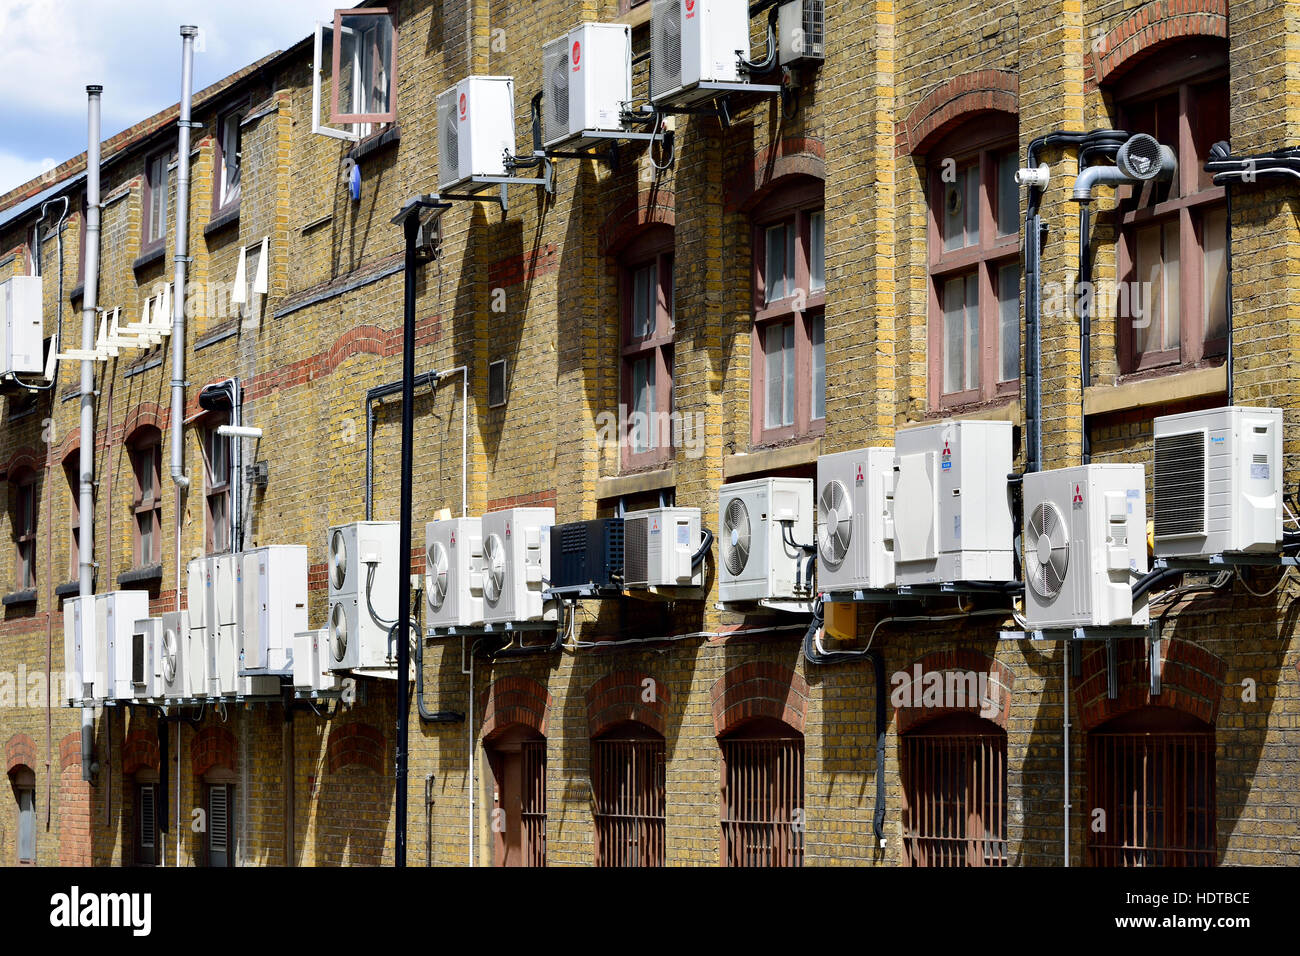 London England, UK. Air-conditioning units behind buildings - Stock Image